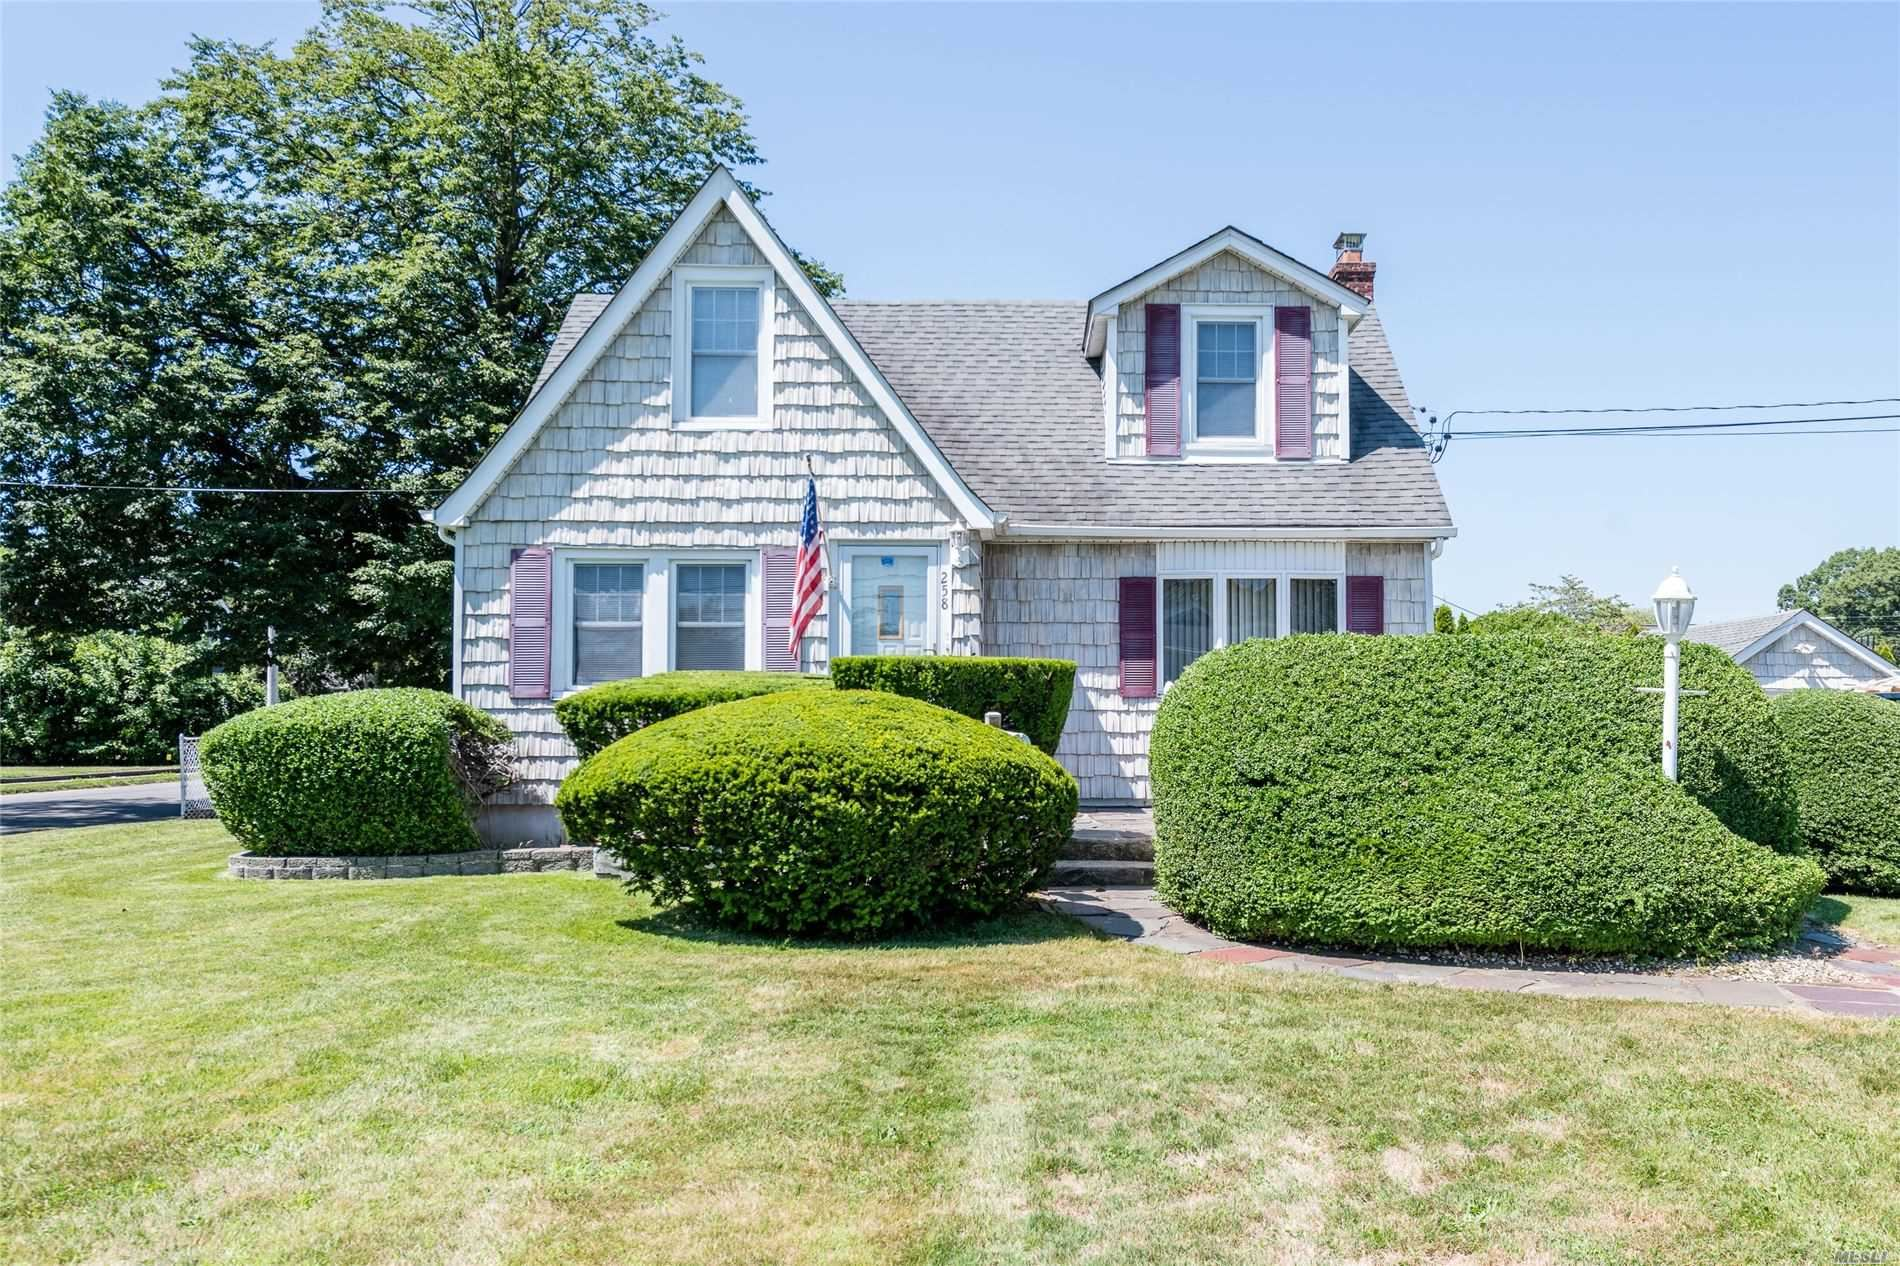 258 Arnold Avenue, West Babylon, NY 11704 - MLS#: 3239985